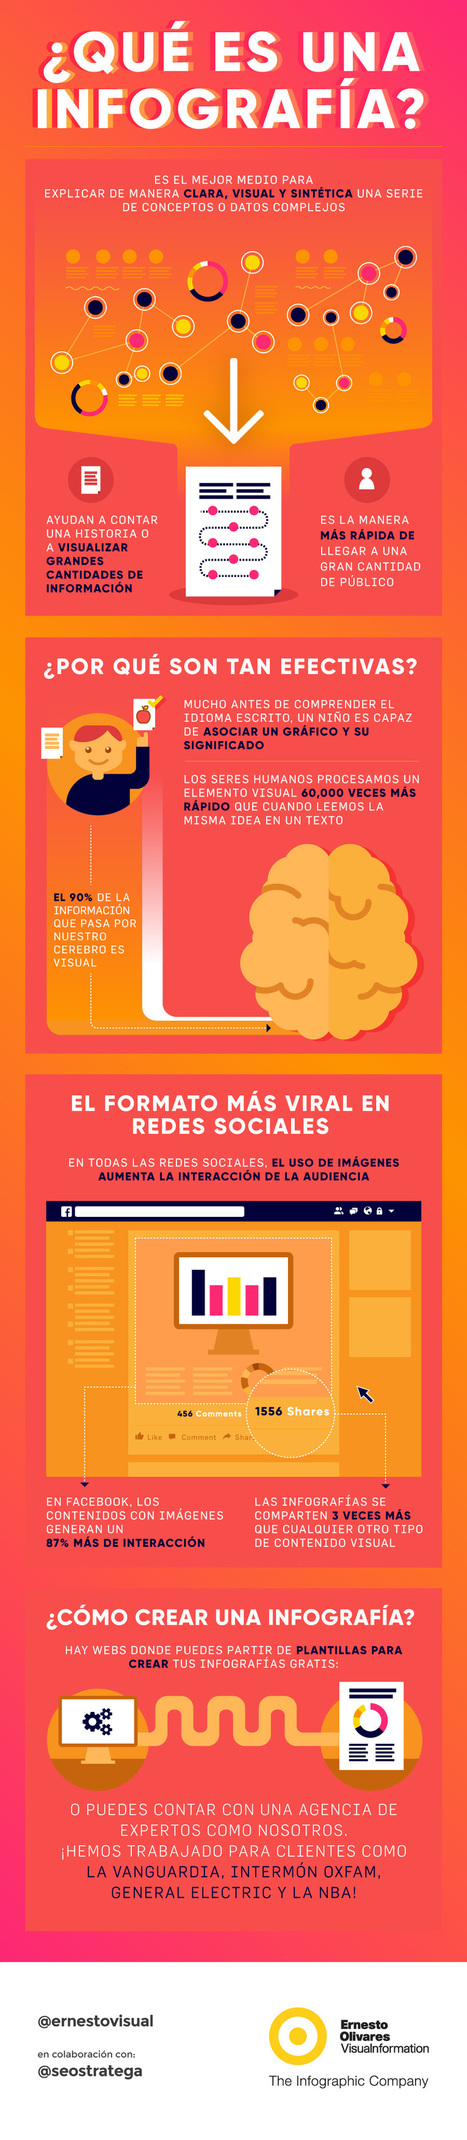 Qué es una Infografía #infografia #infographic #design #marketing | Educacion, ecologia y TIC | Scoop.it